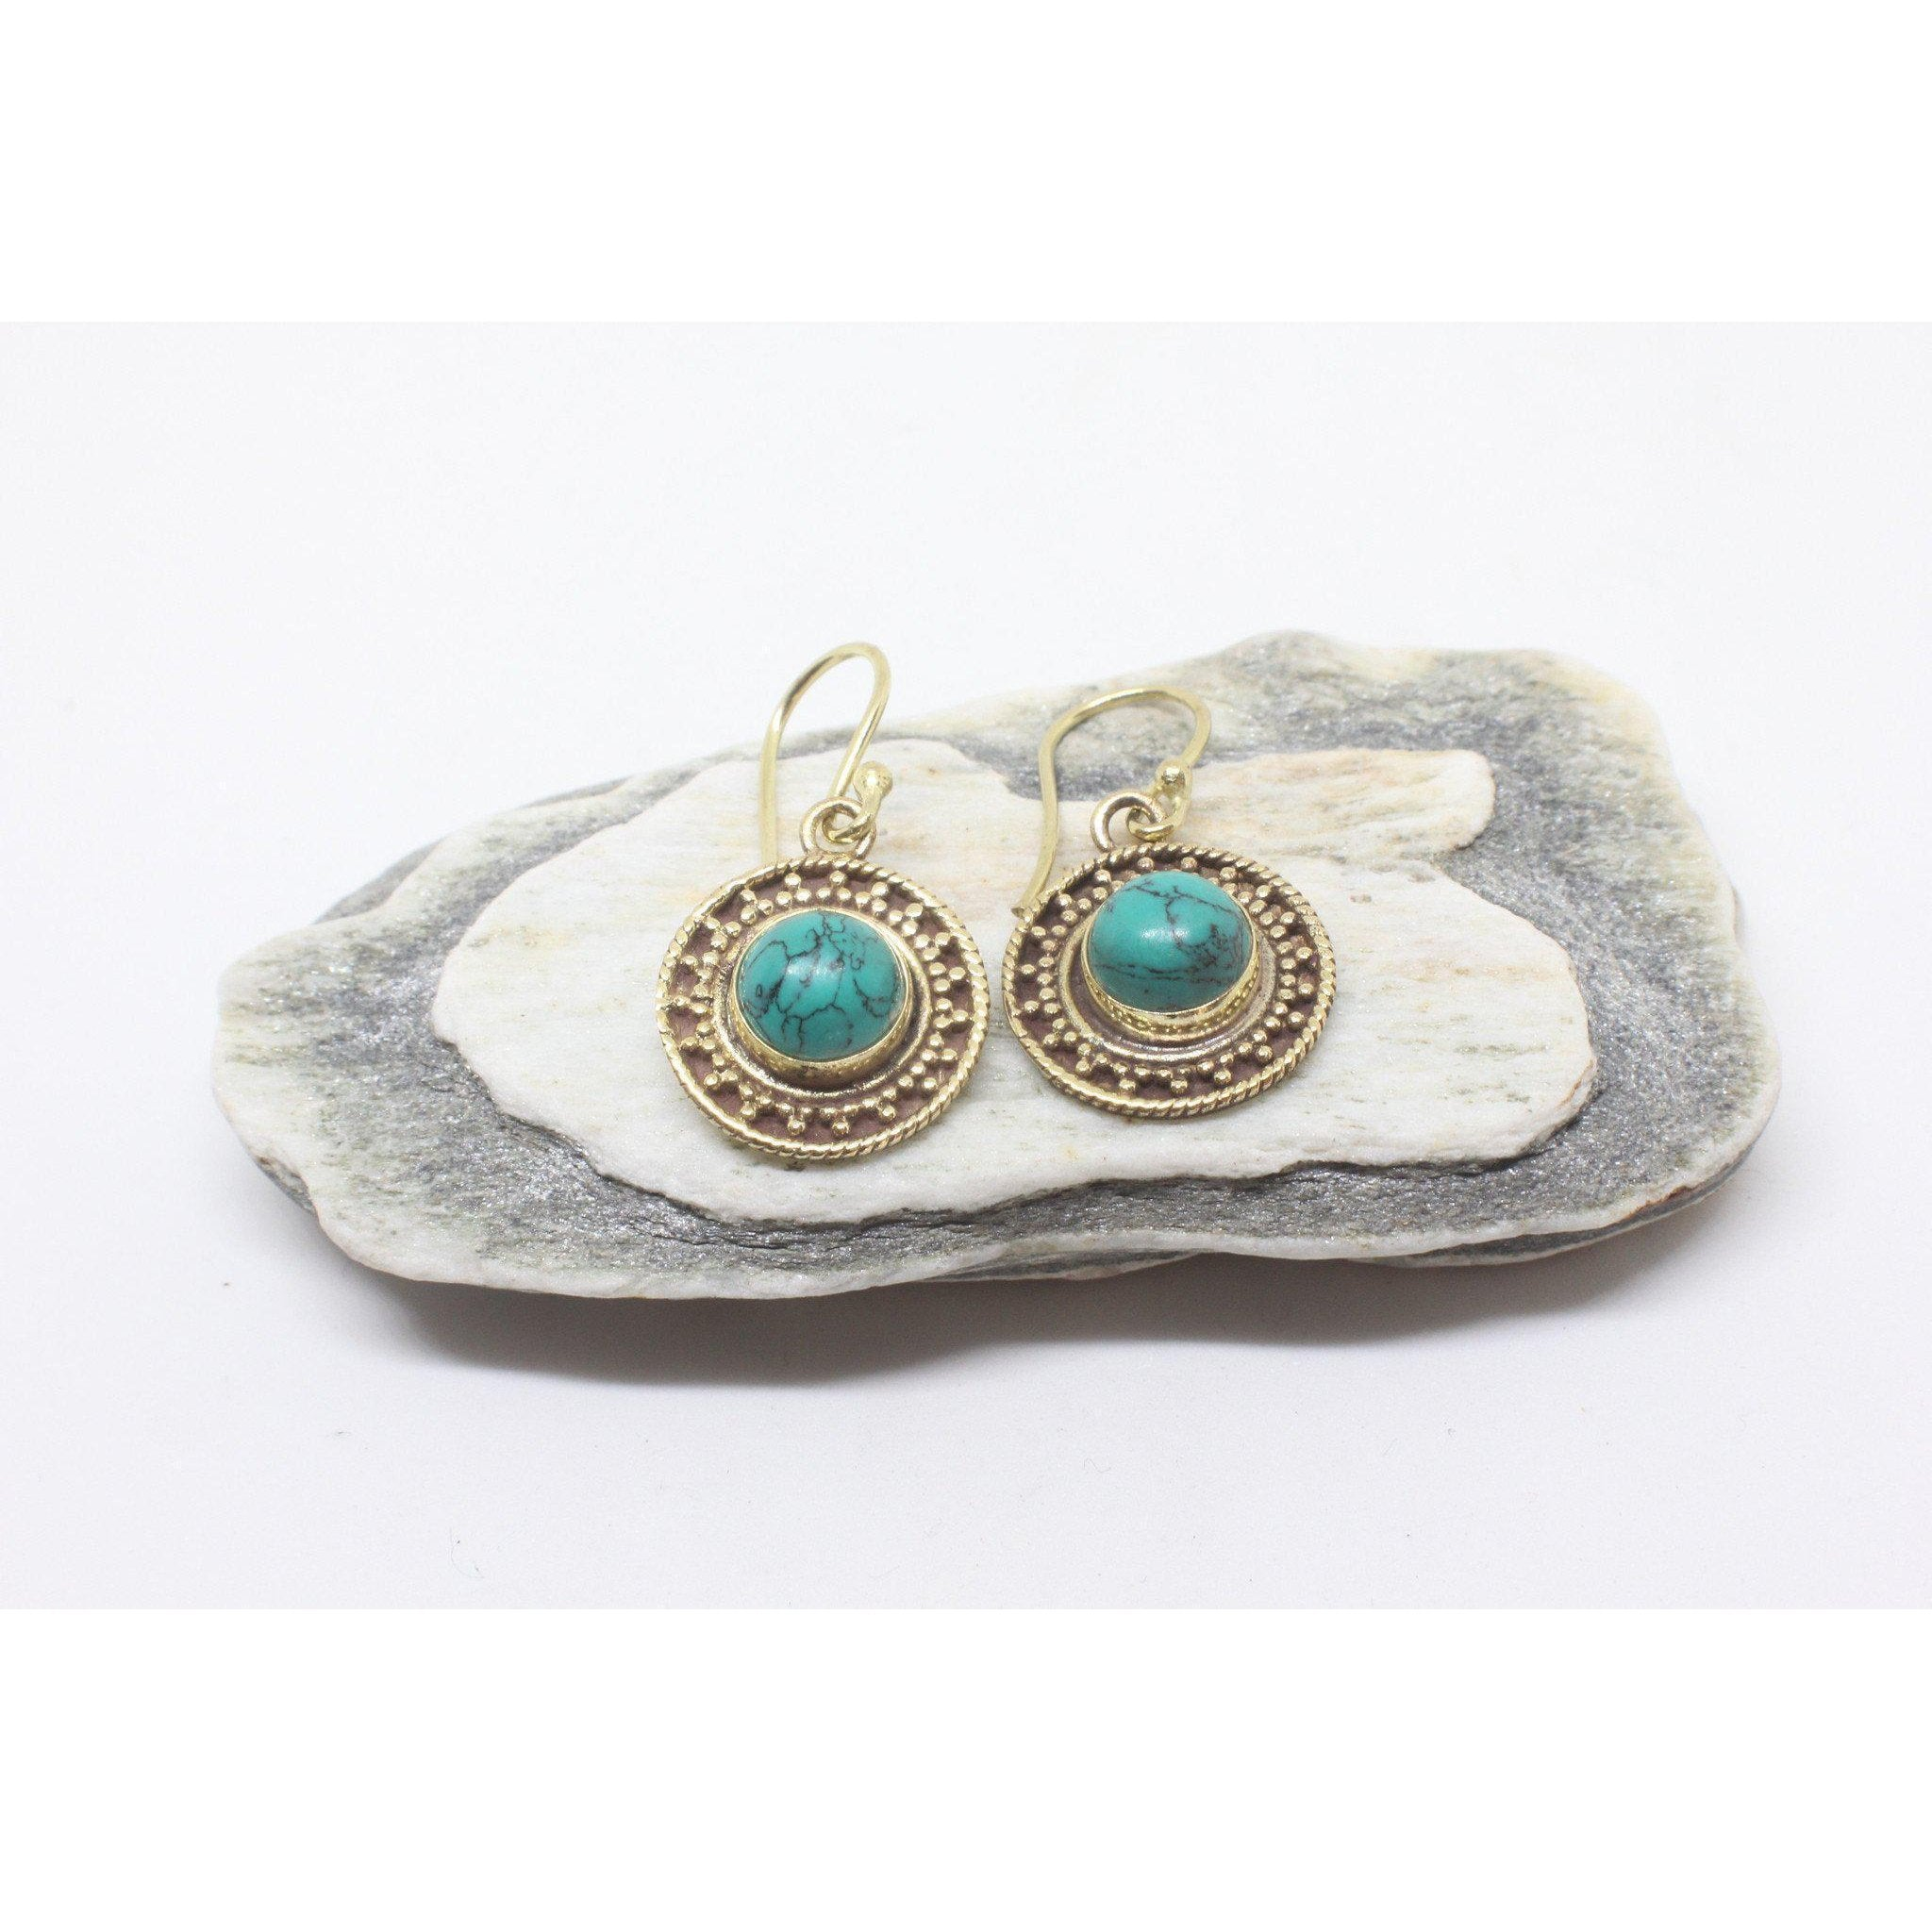 Mahtab Brass Earrings-JEWELLERY / EARRINGS-Gopal Brass Man (IND)-Howlite-The Outpost NZ